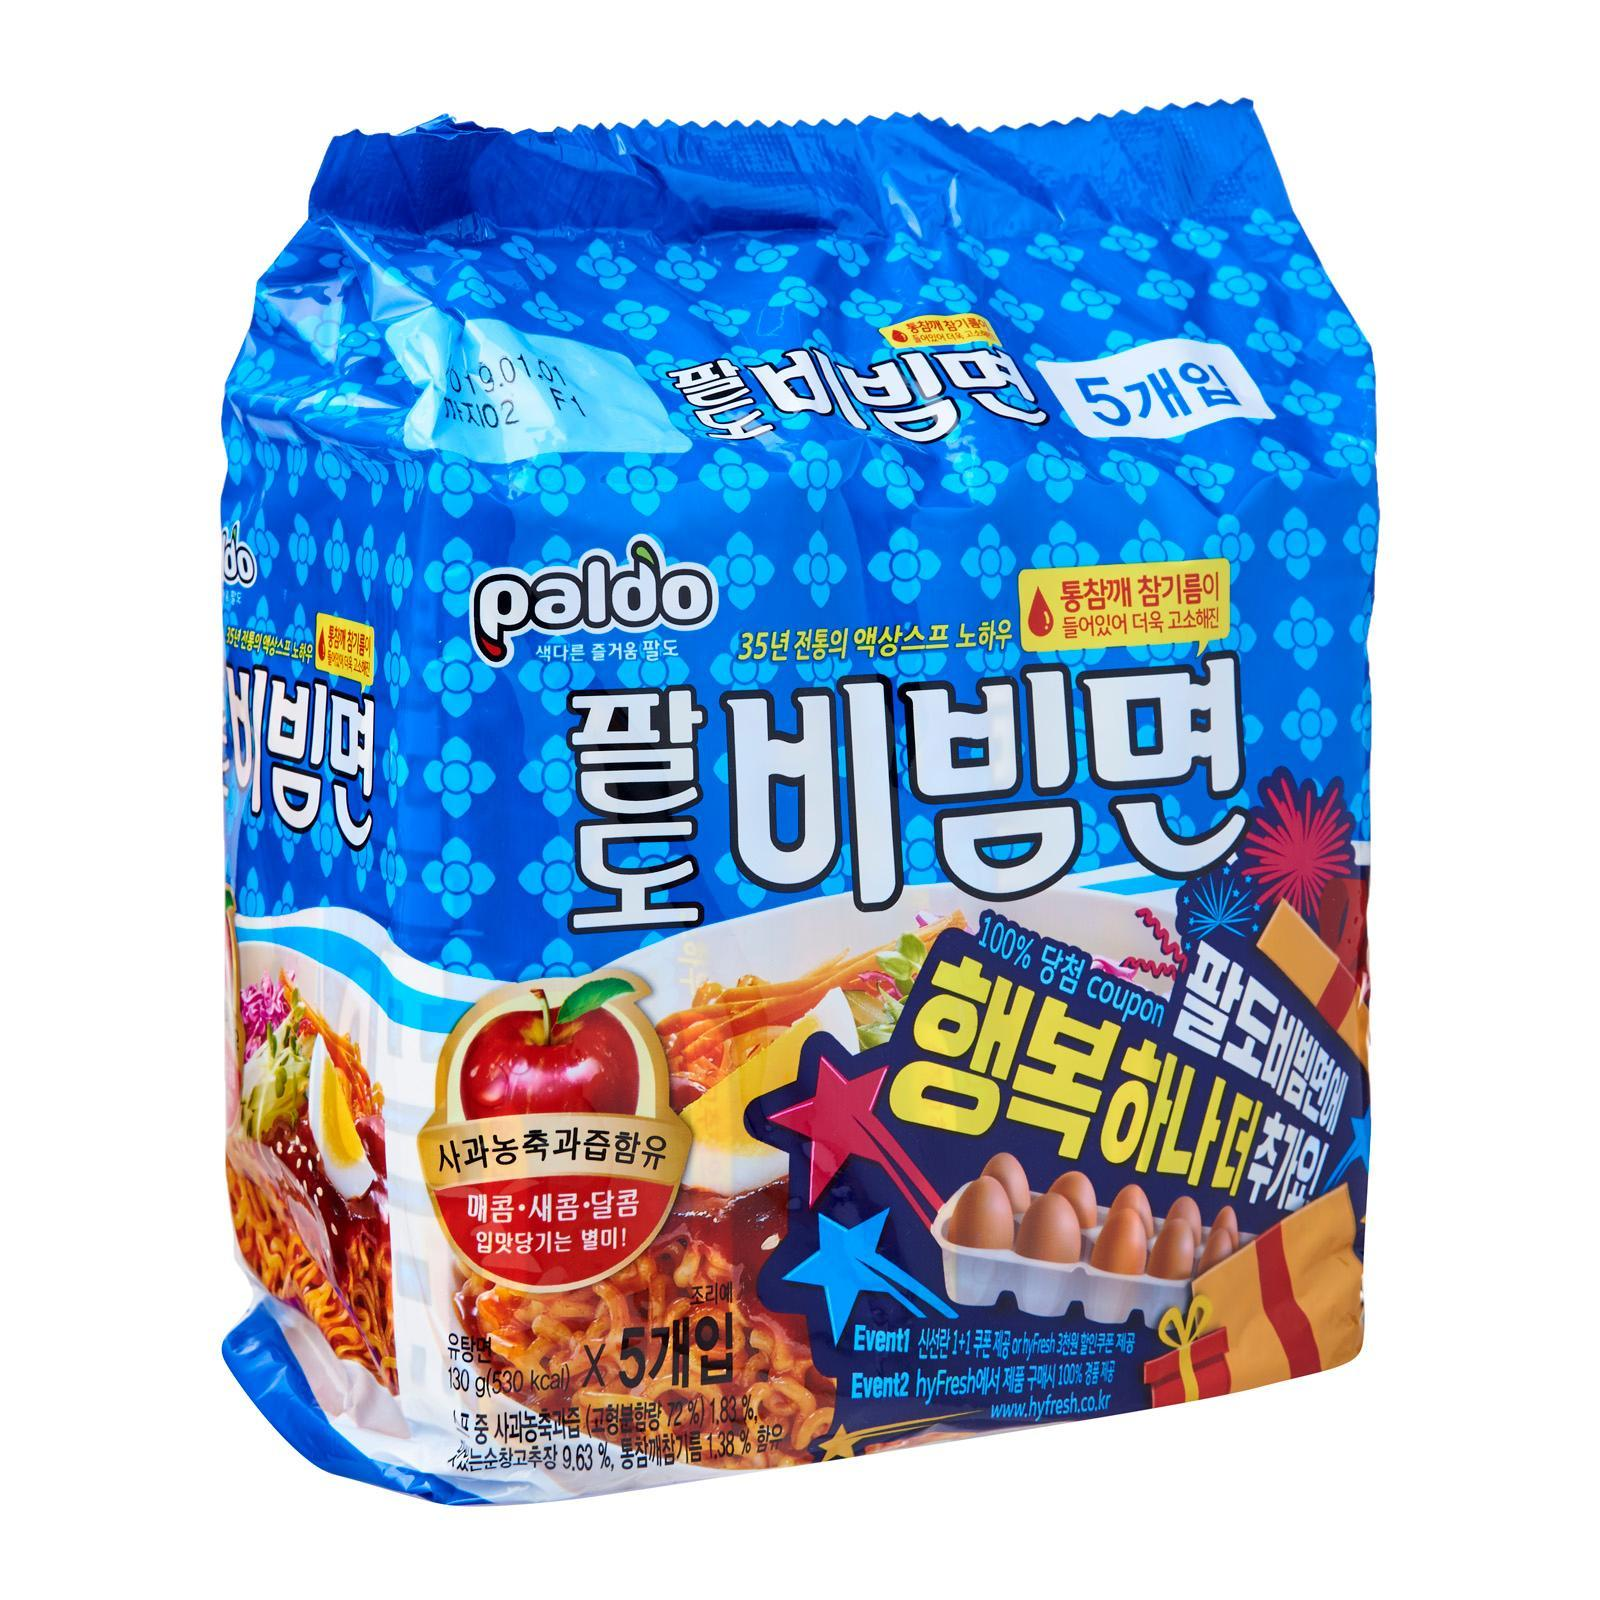 Paldo Korean Bibim Noodles Sweet and Spicy Cold Noodles Instant Ramen Noodles 5s